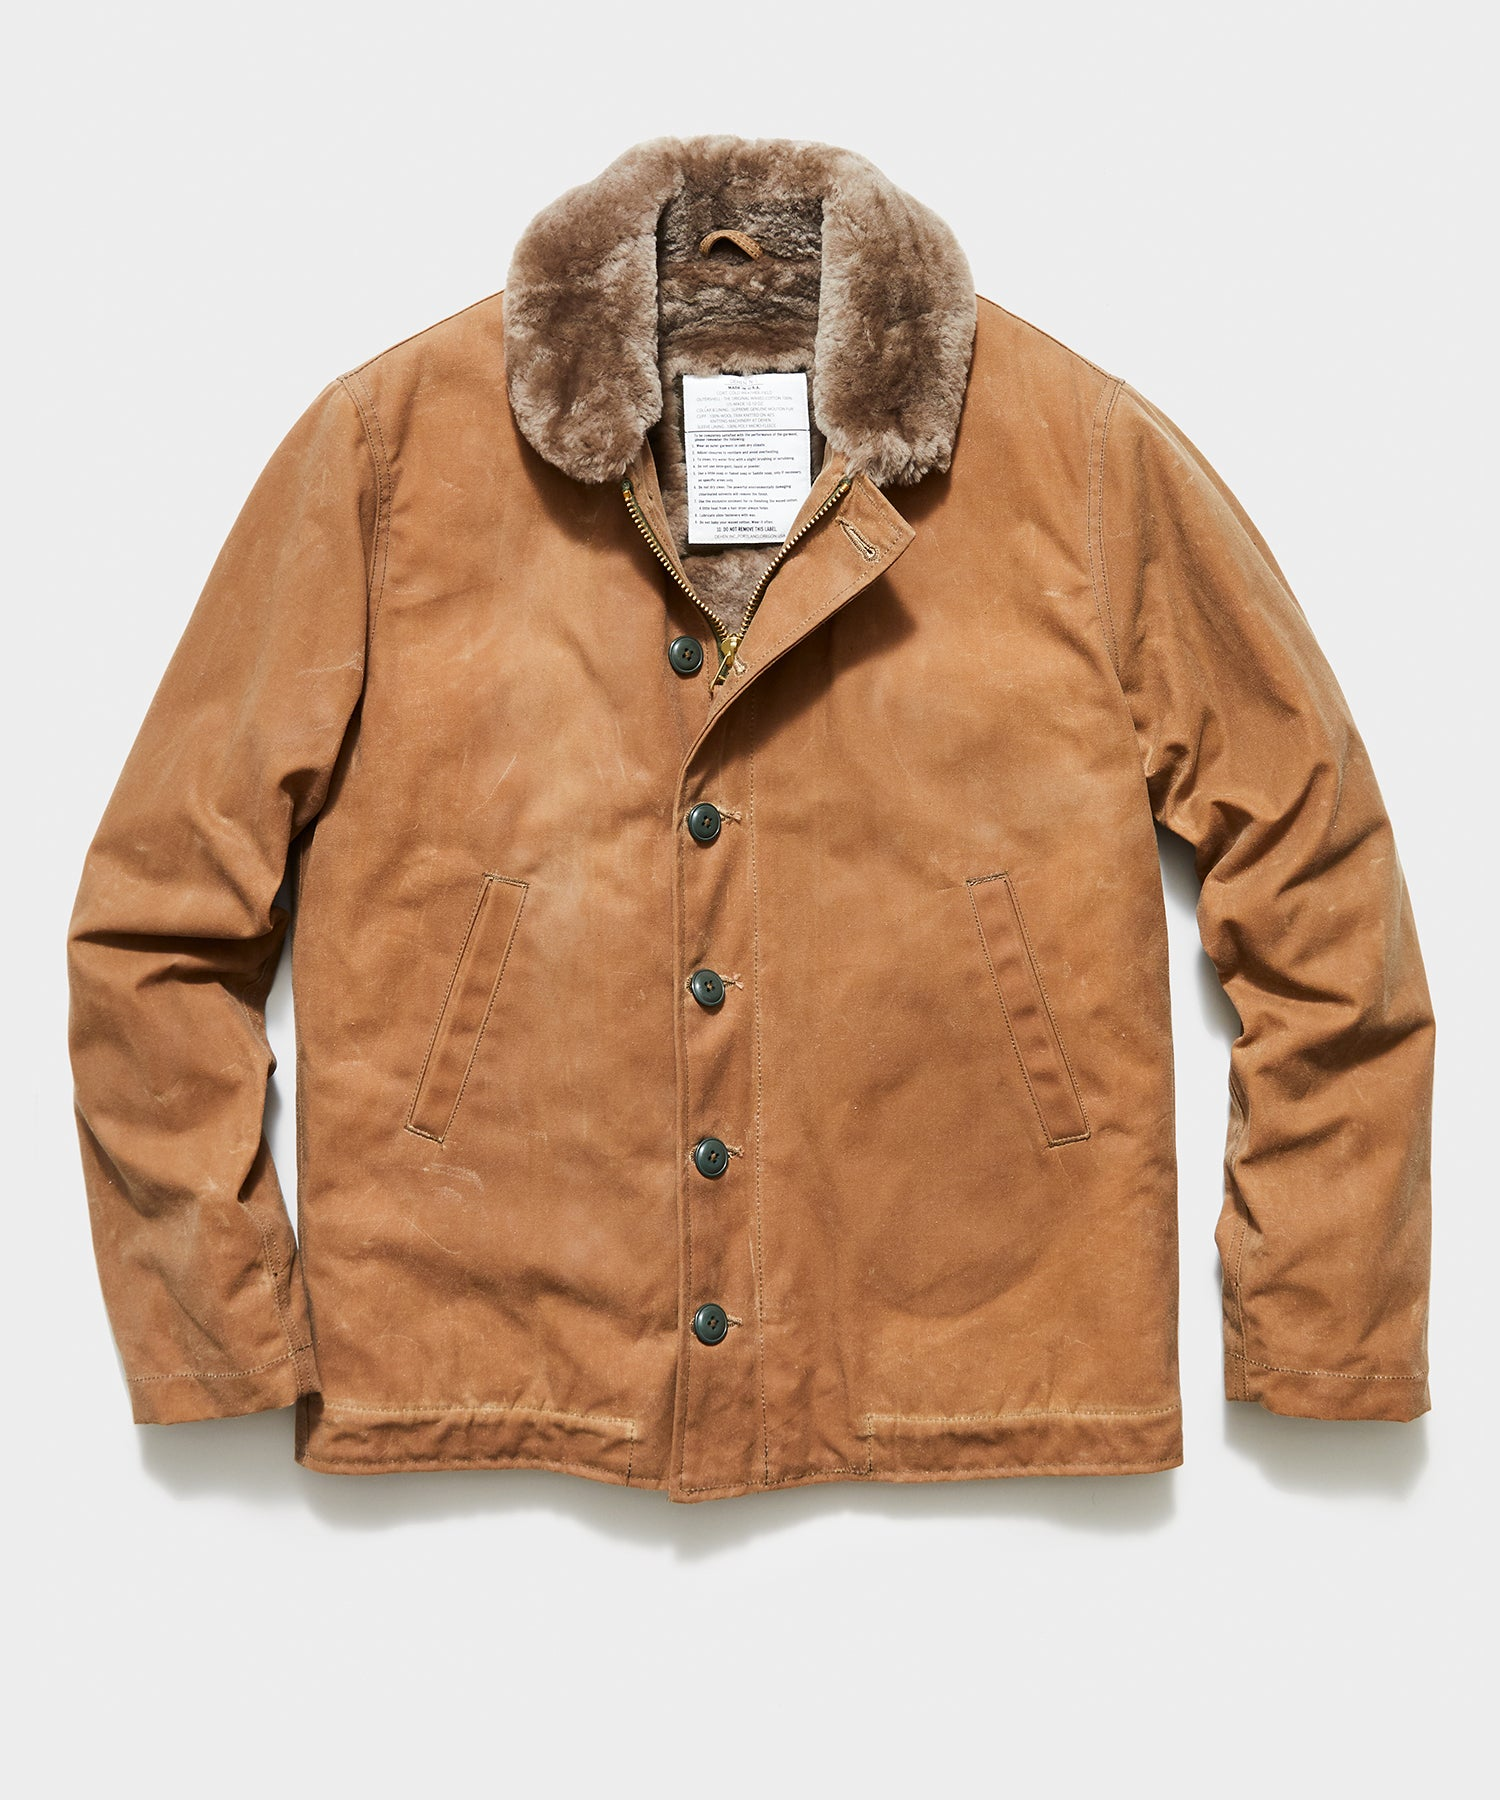 Dehen N-1 Deck Jacket in Tan